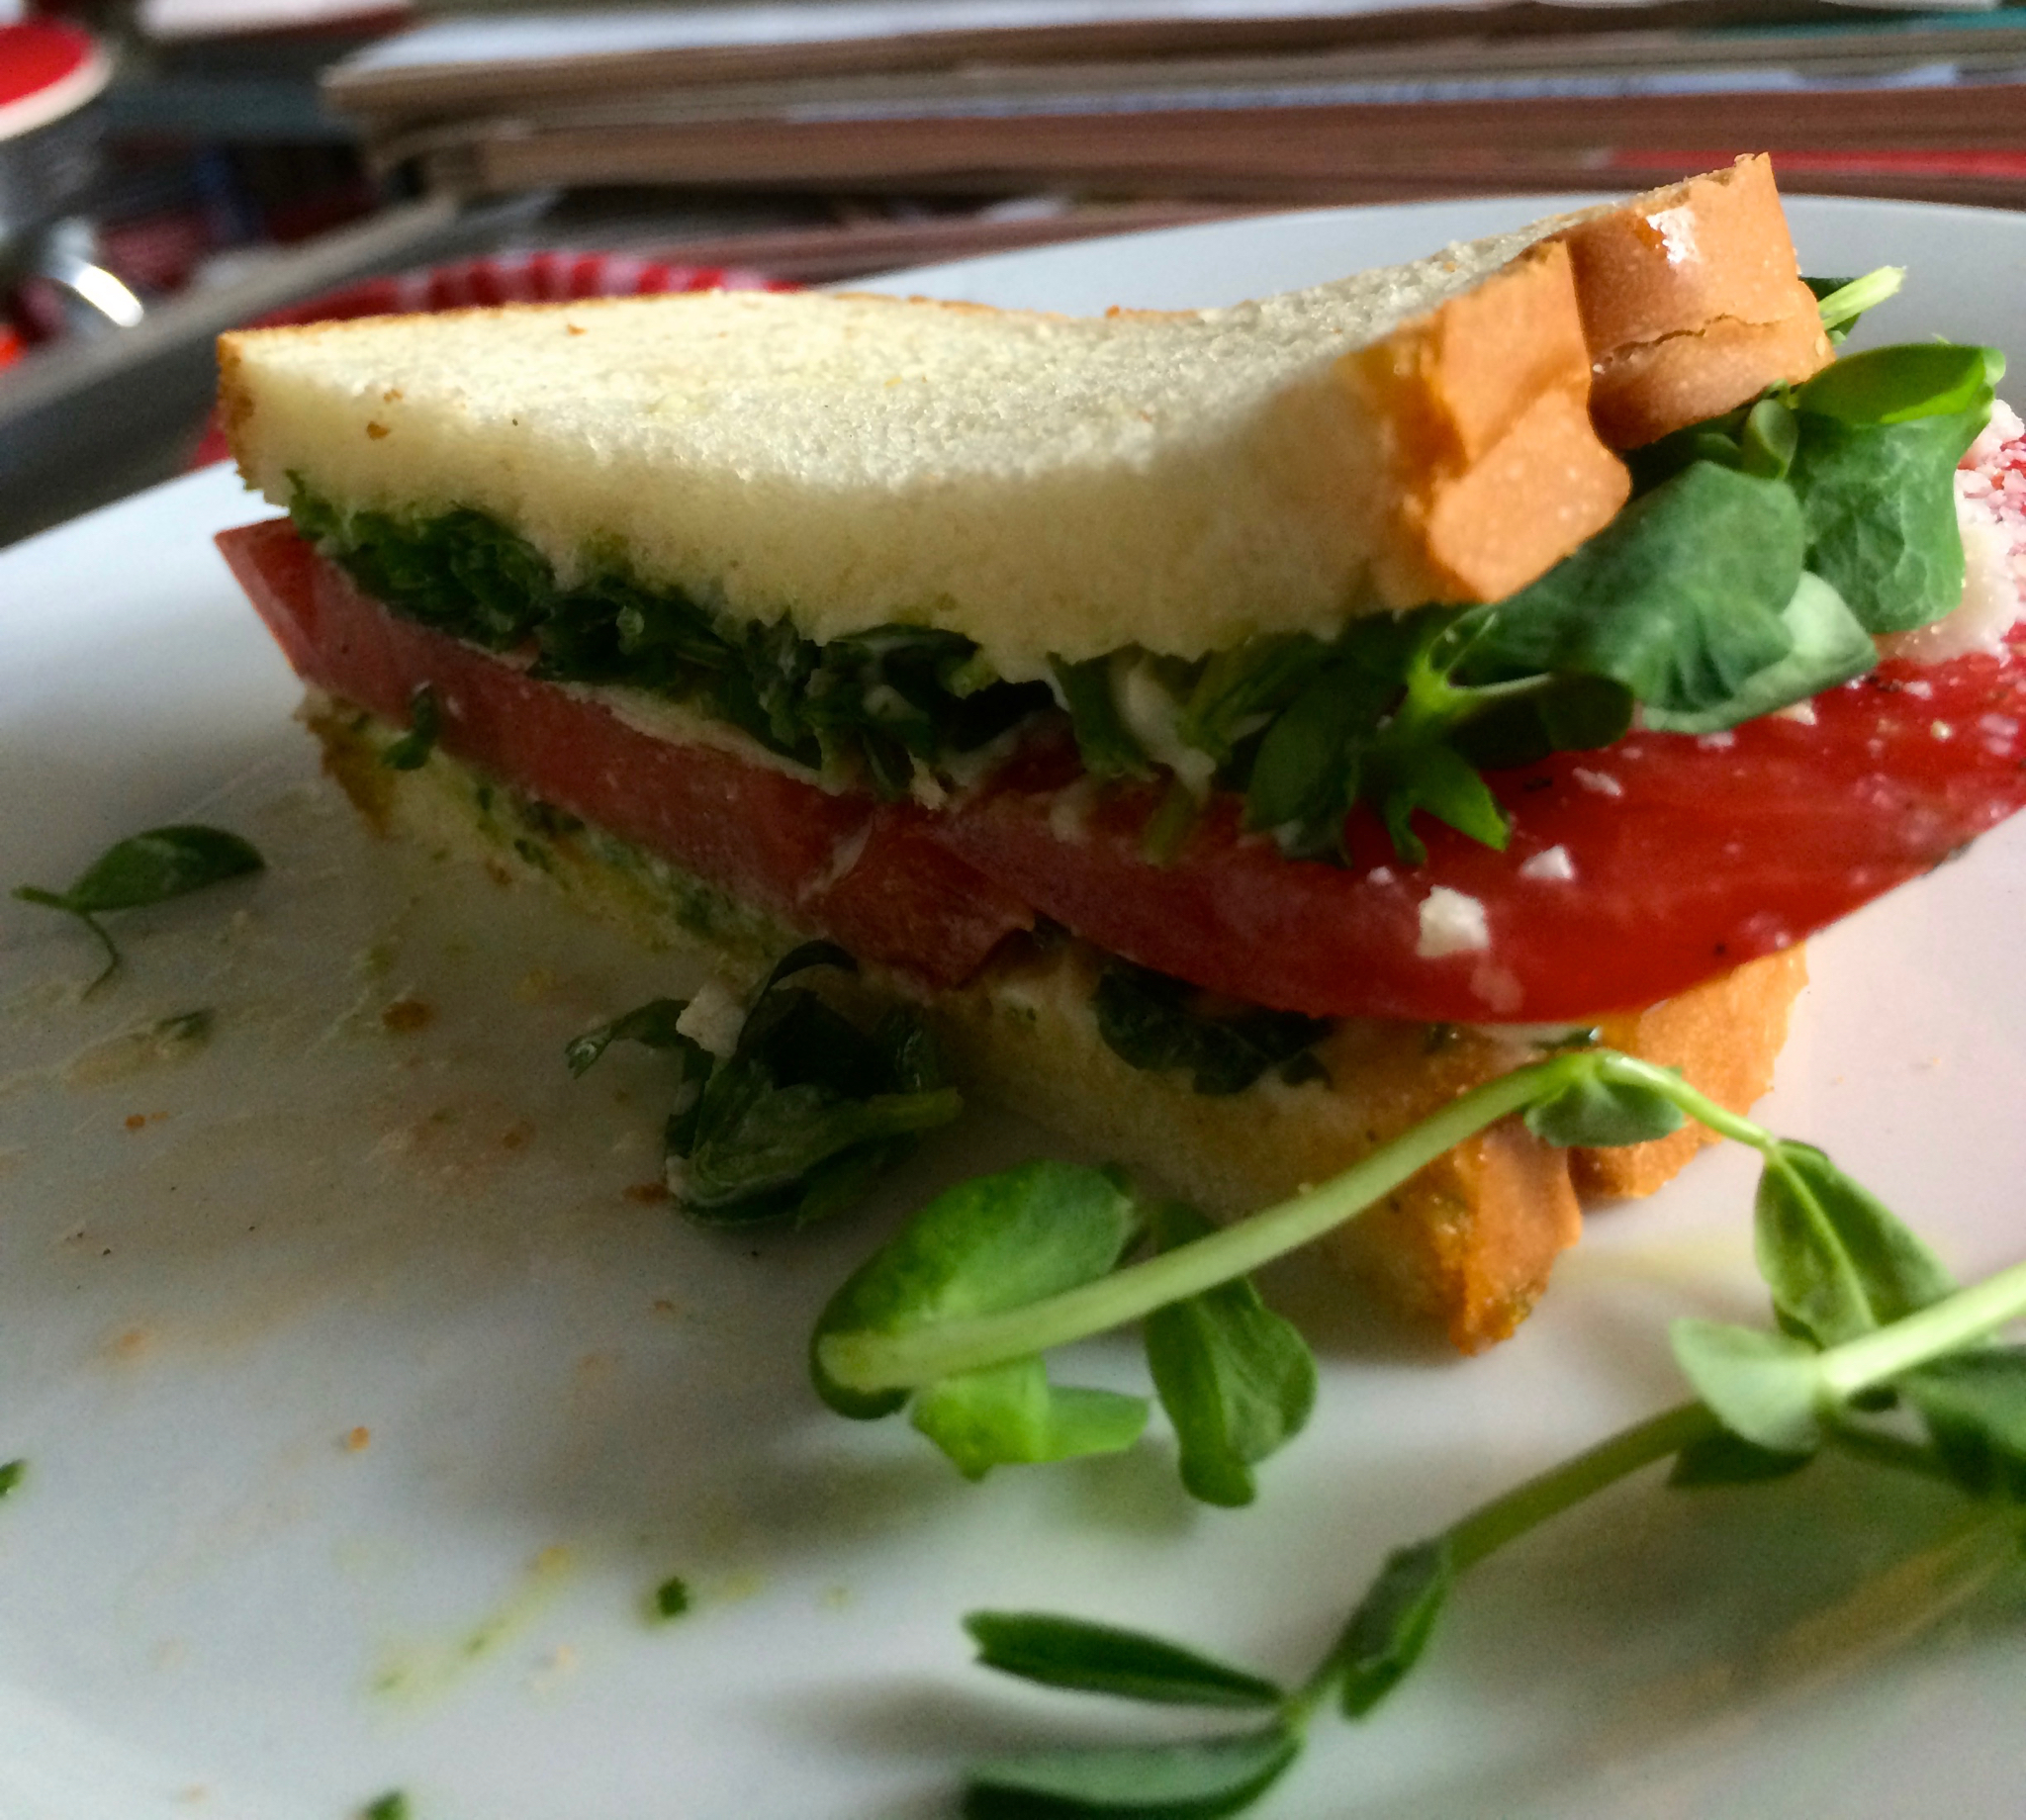 Bacon-less BLT with tomato and pea shoots. Light and refreshing and perfect for our resident vegetarian, Denaya!